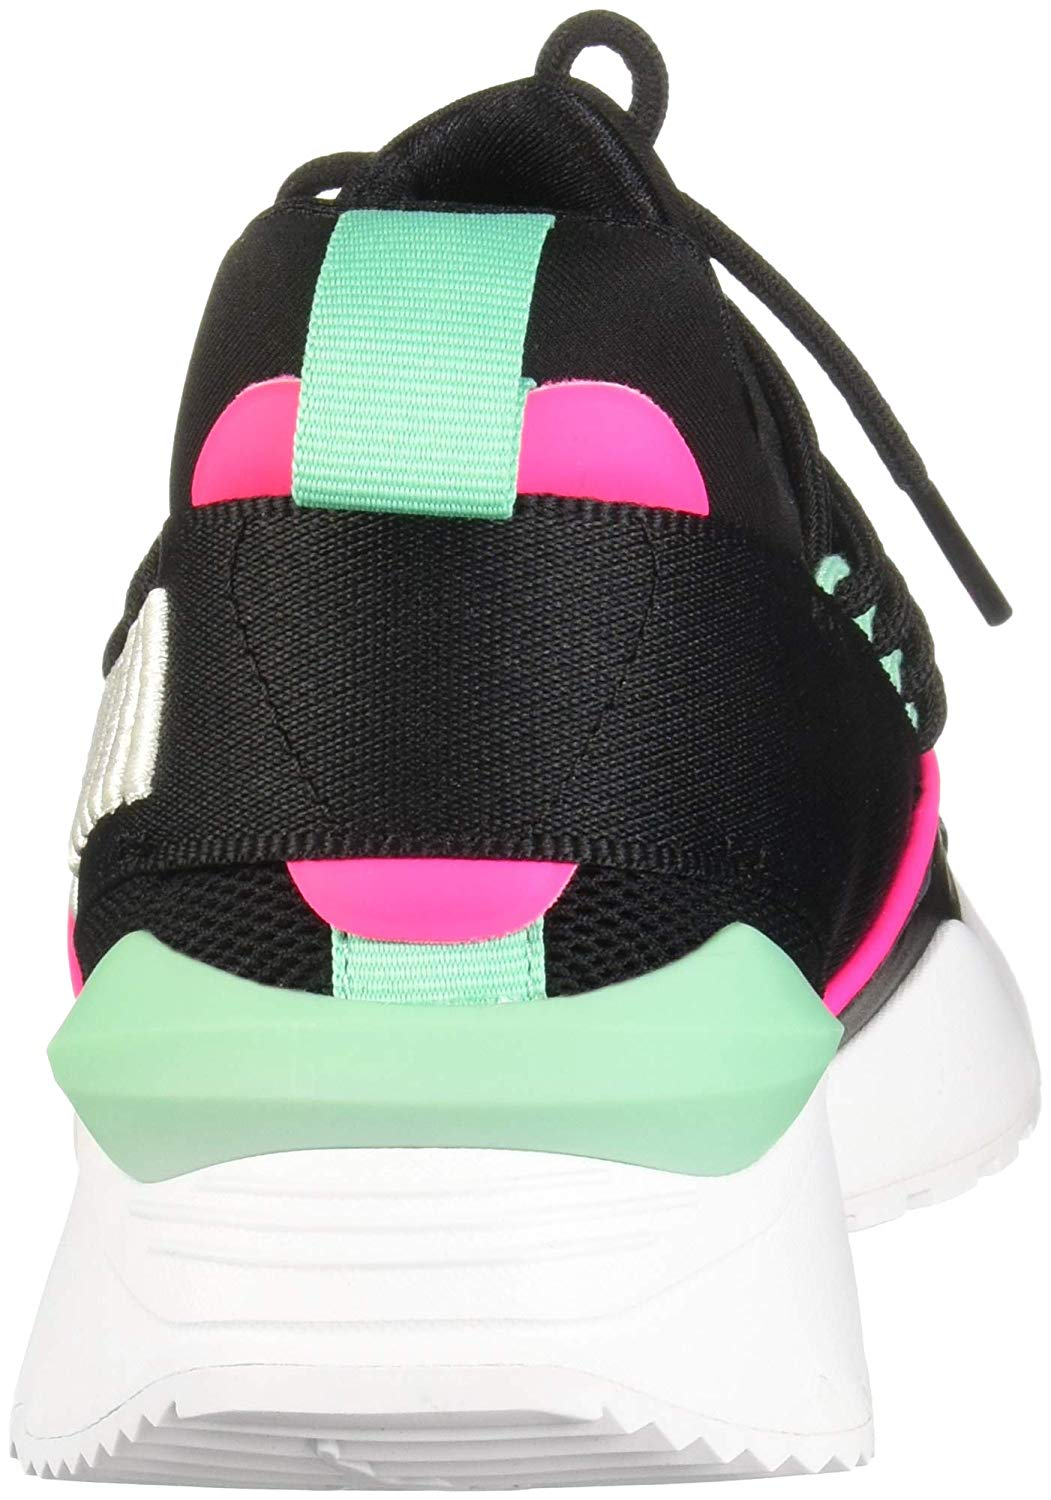 55ac4ab3 Details about PUMA Muse Maia Street 1 Womens Trainers, Black, Size 8.5 agA0